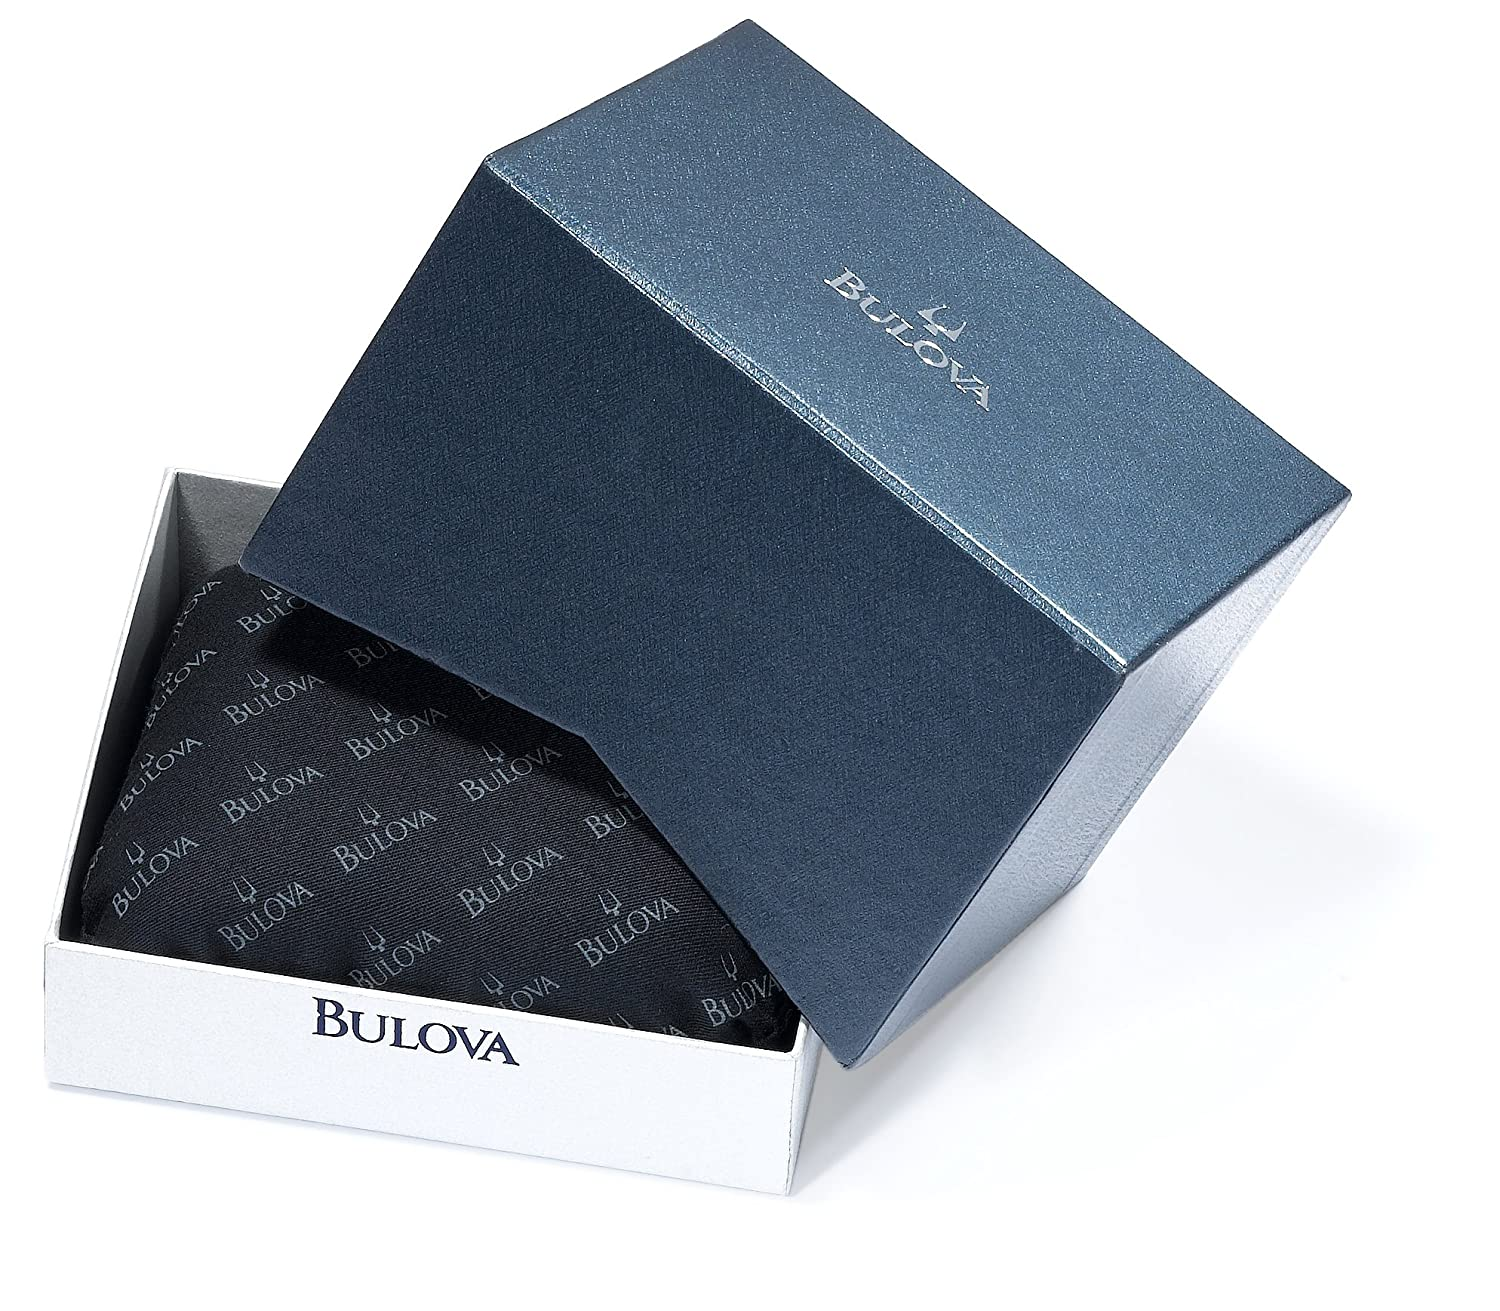 Bulova Men's 98E003 Marine Star Diamond Accented Watch $179.95